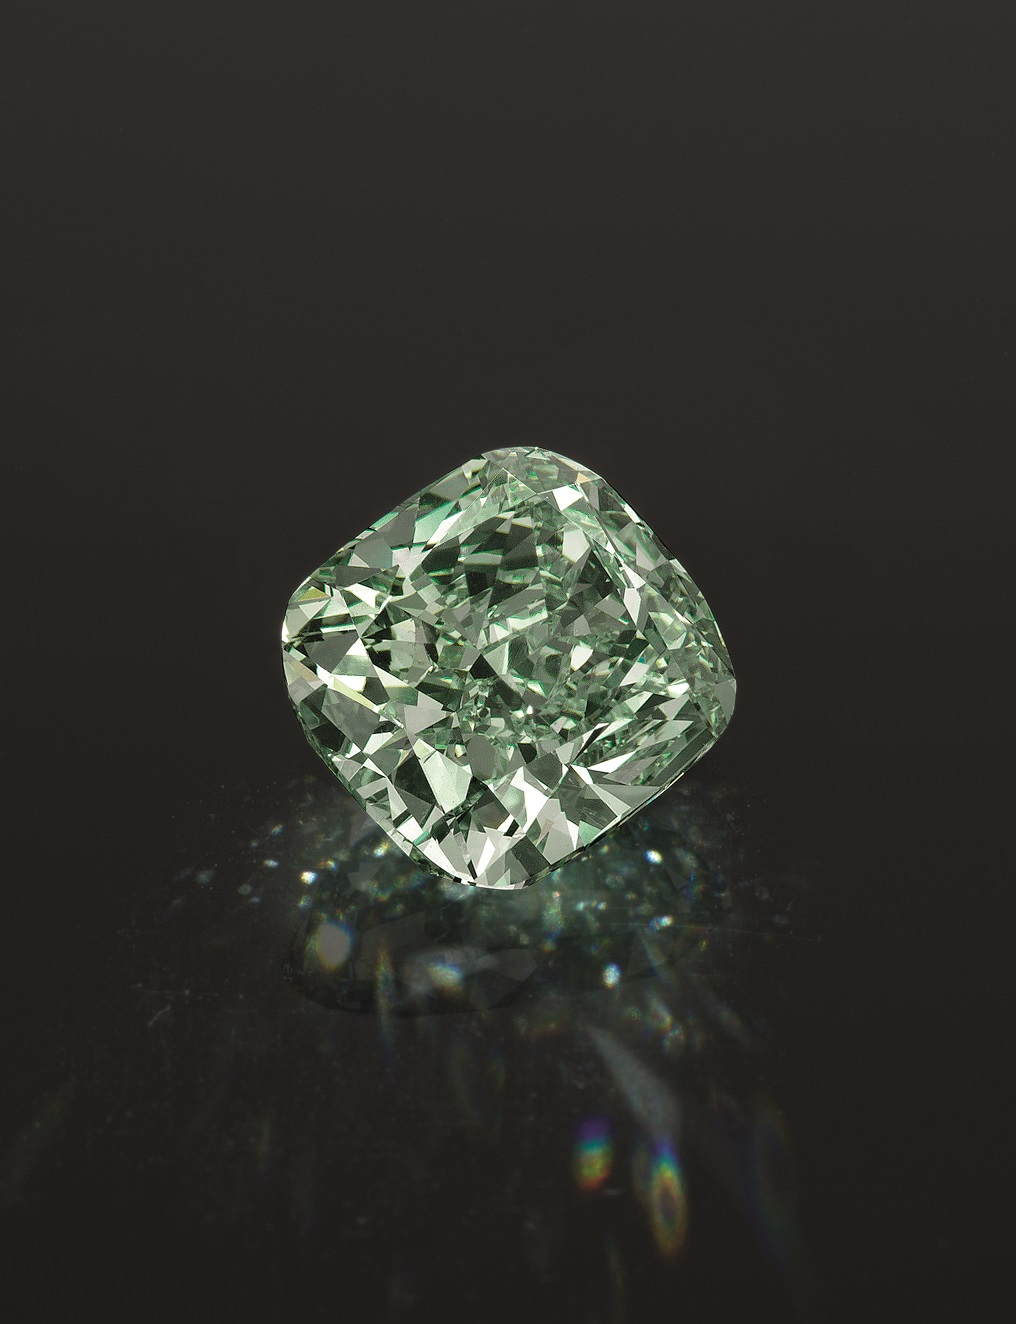 Rare and Important Fancy Intense Green Diamond Small